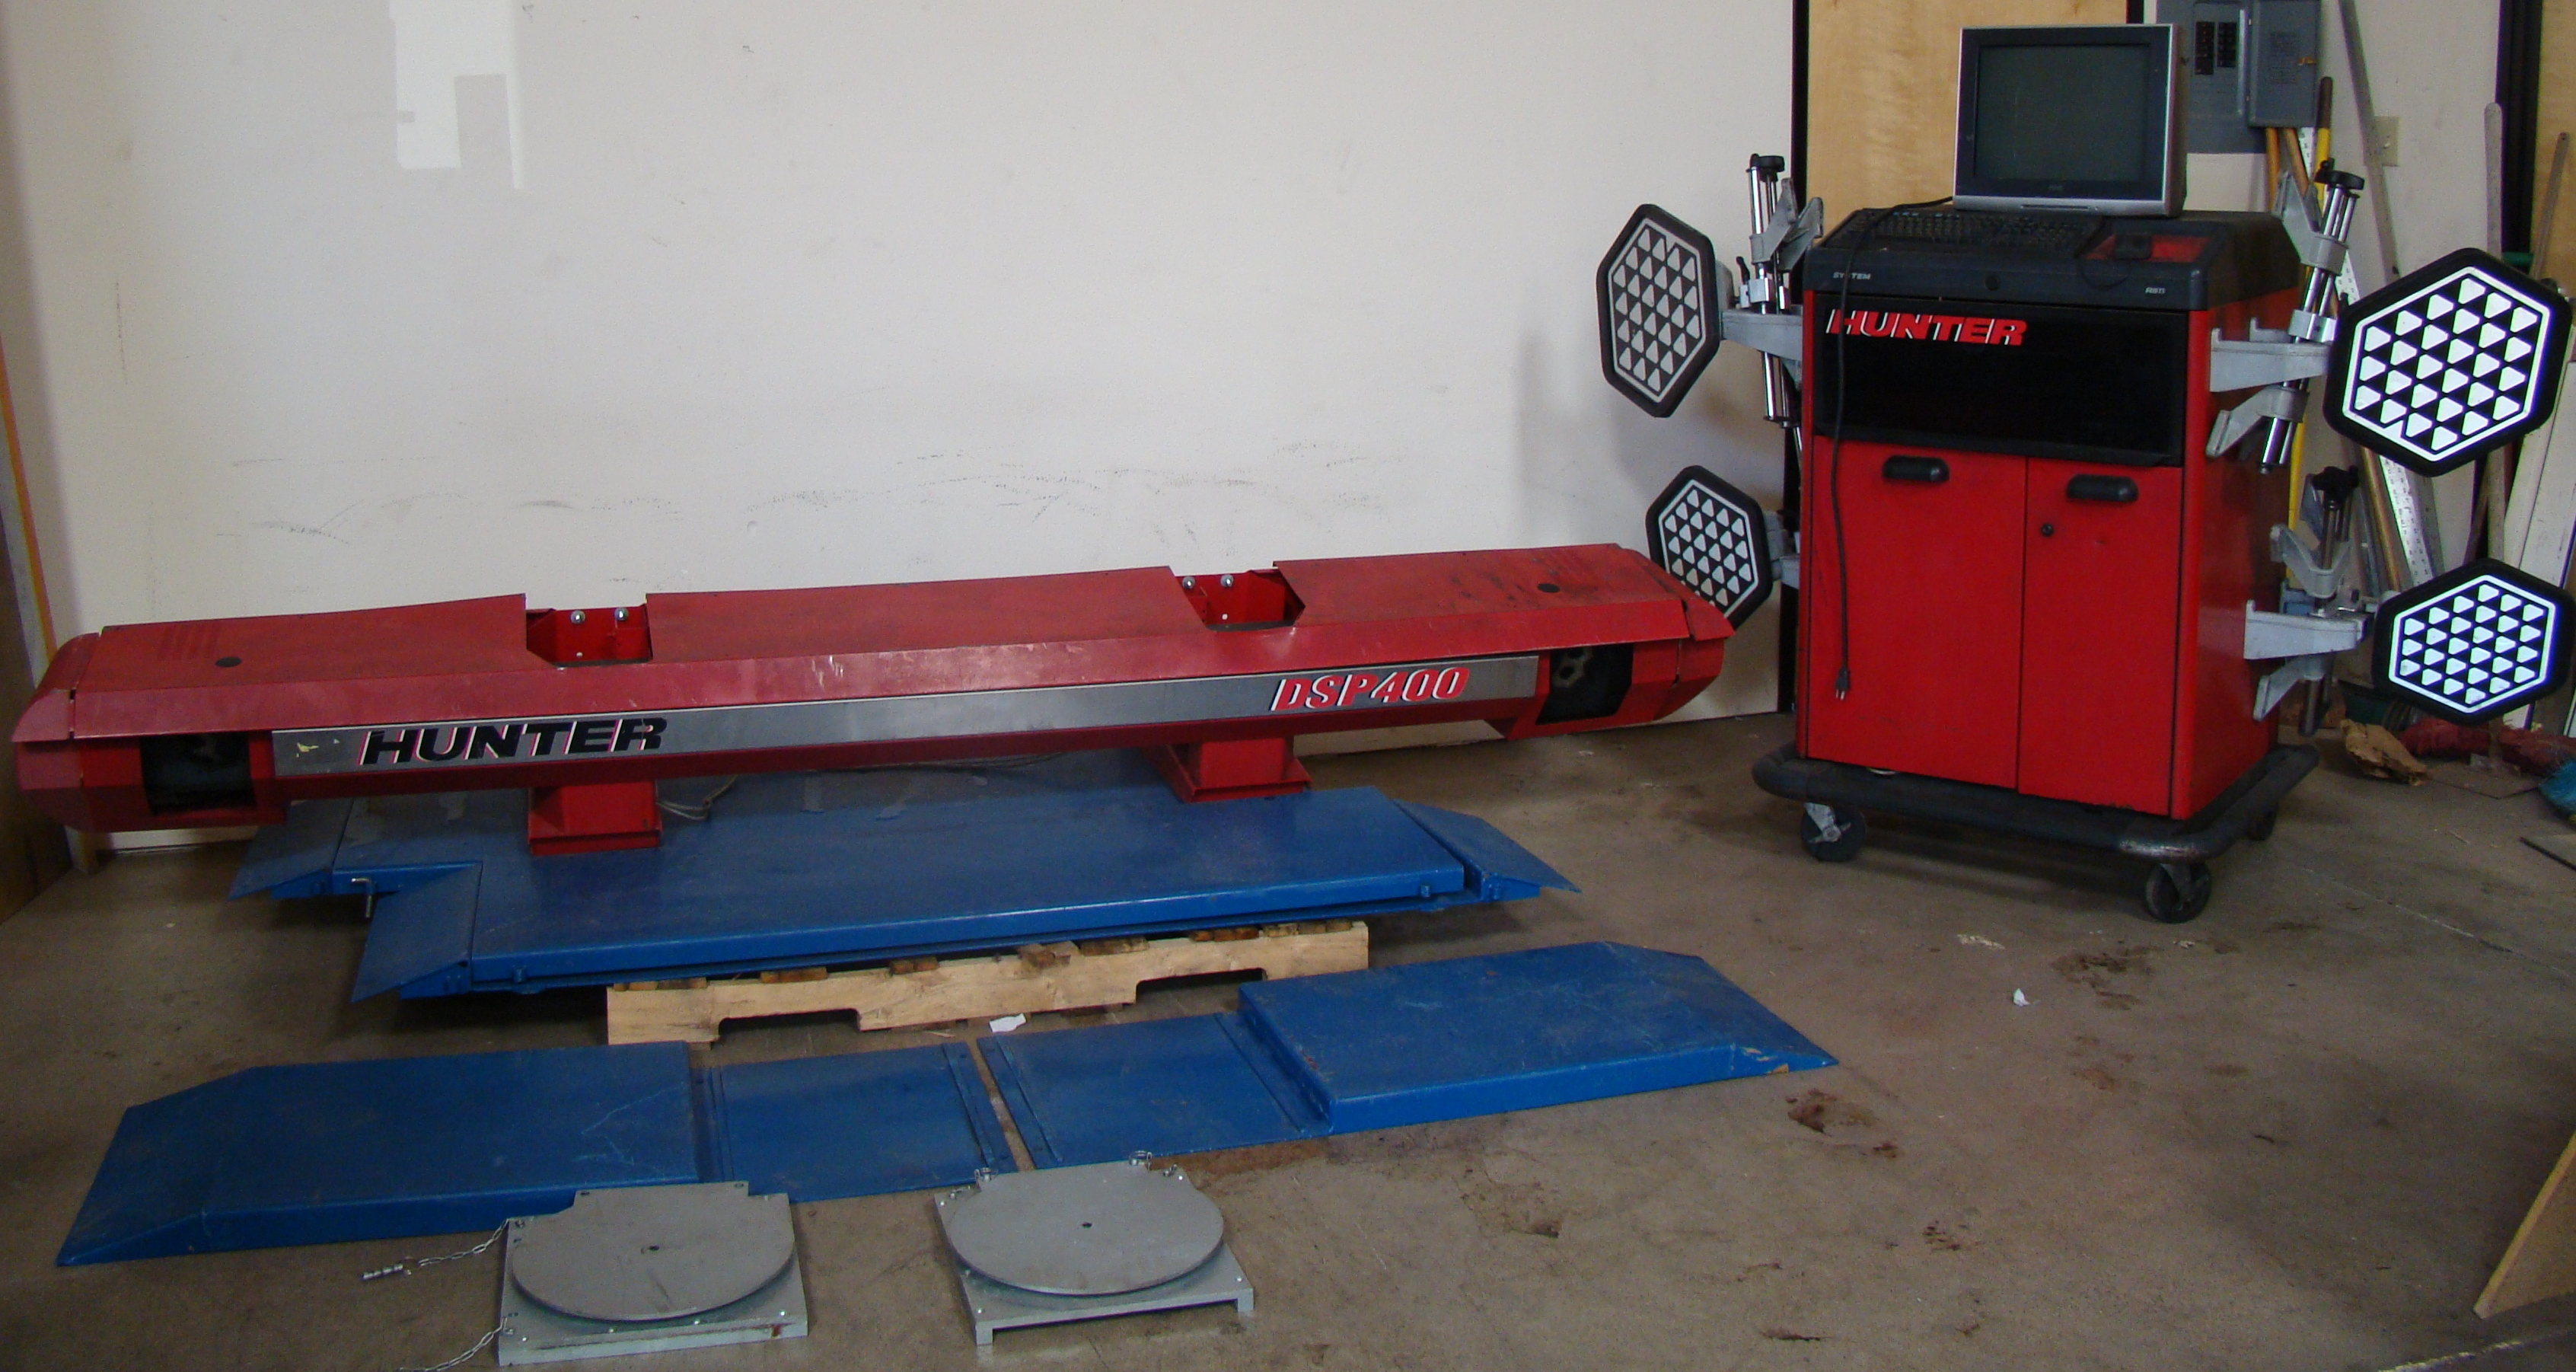 Lot 36 - Hunter DSP400 Alignment Machine, 4-DSP 400 sensors, compter, & mobile cart on wheels